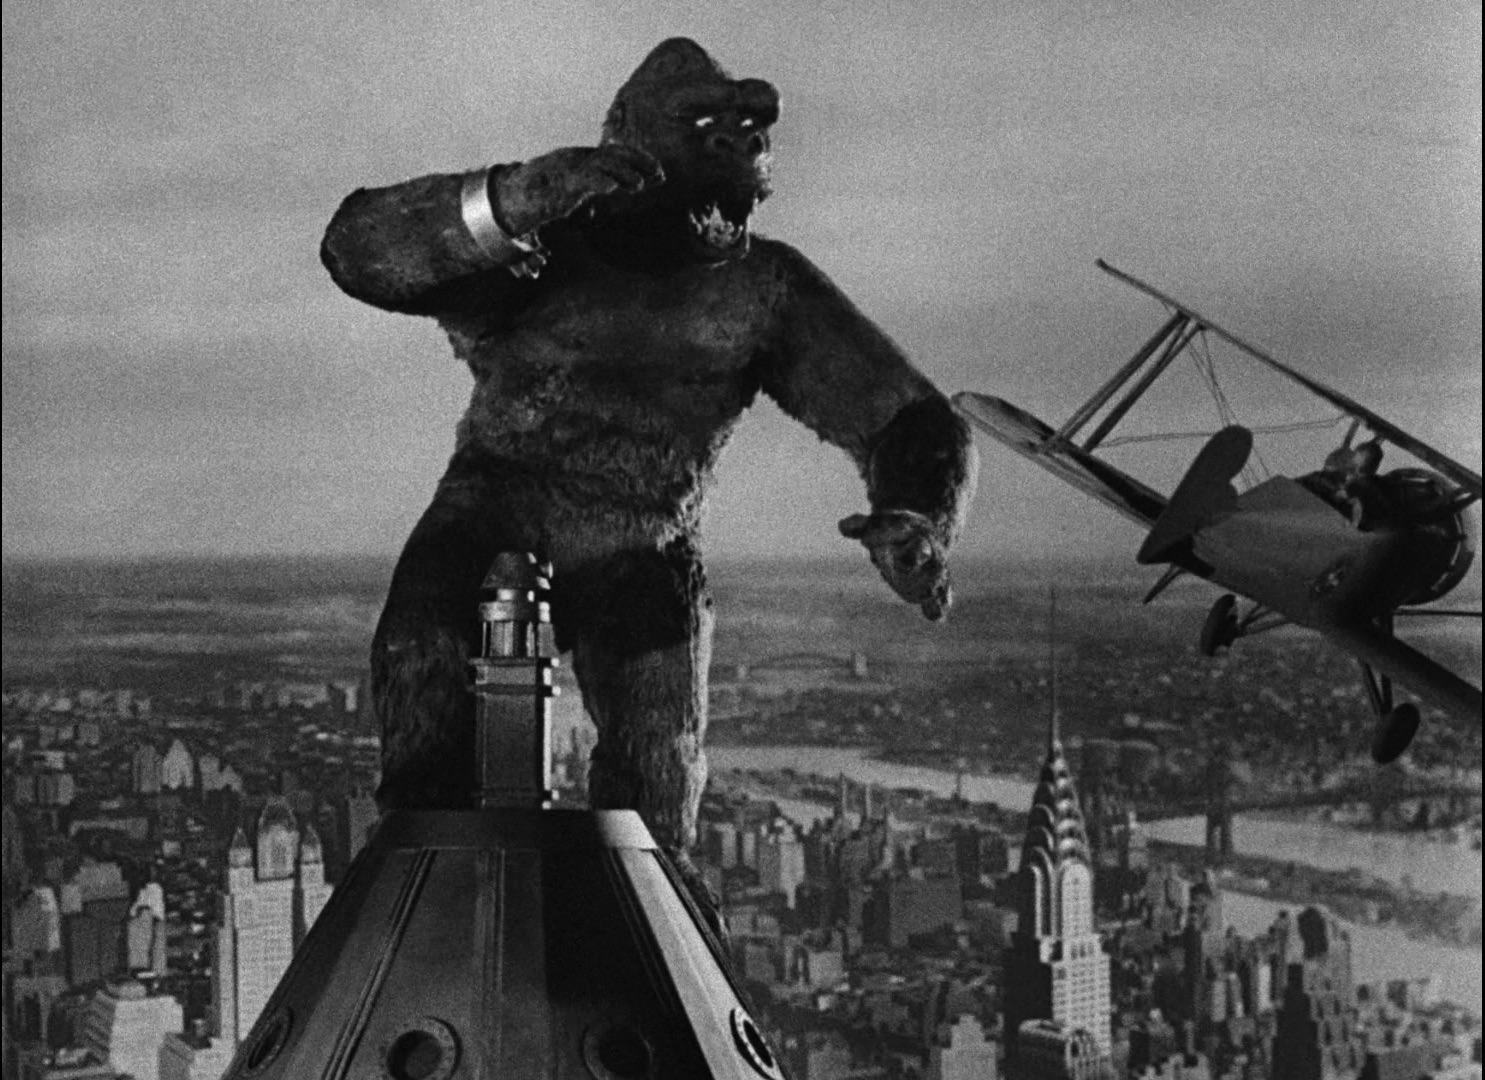 King kong 1933 filming locations